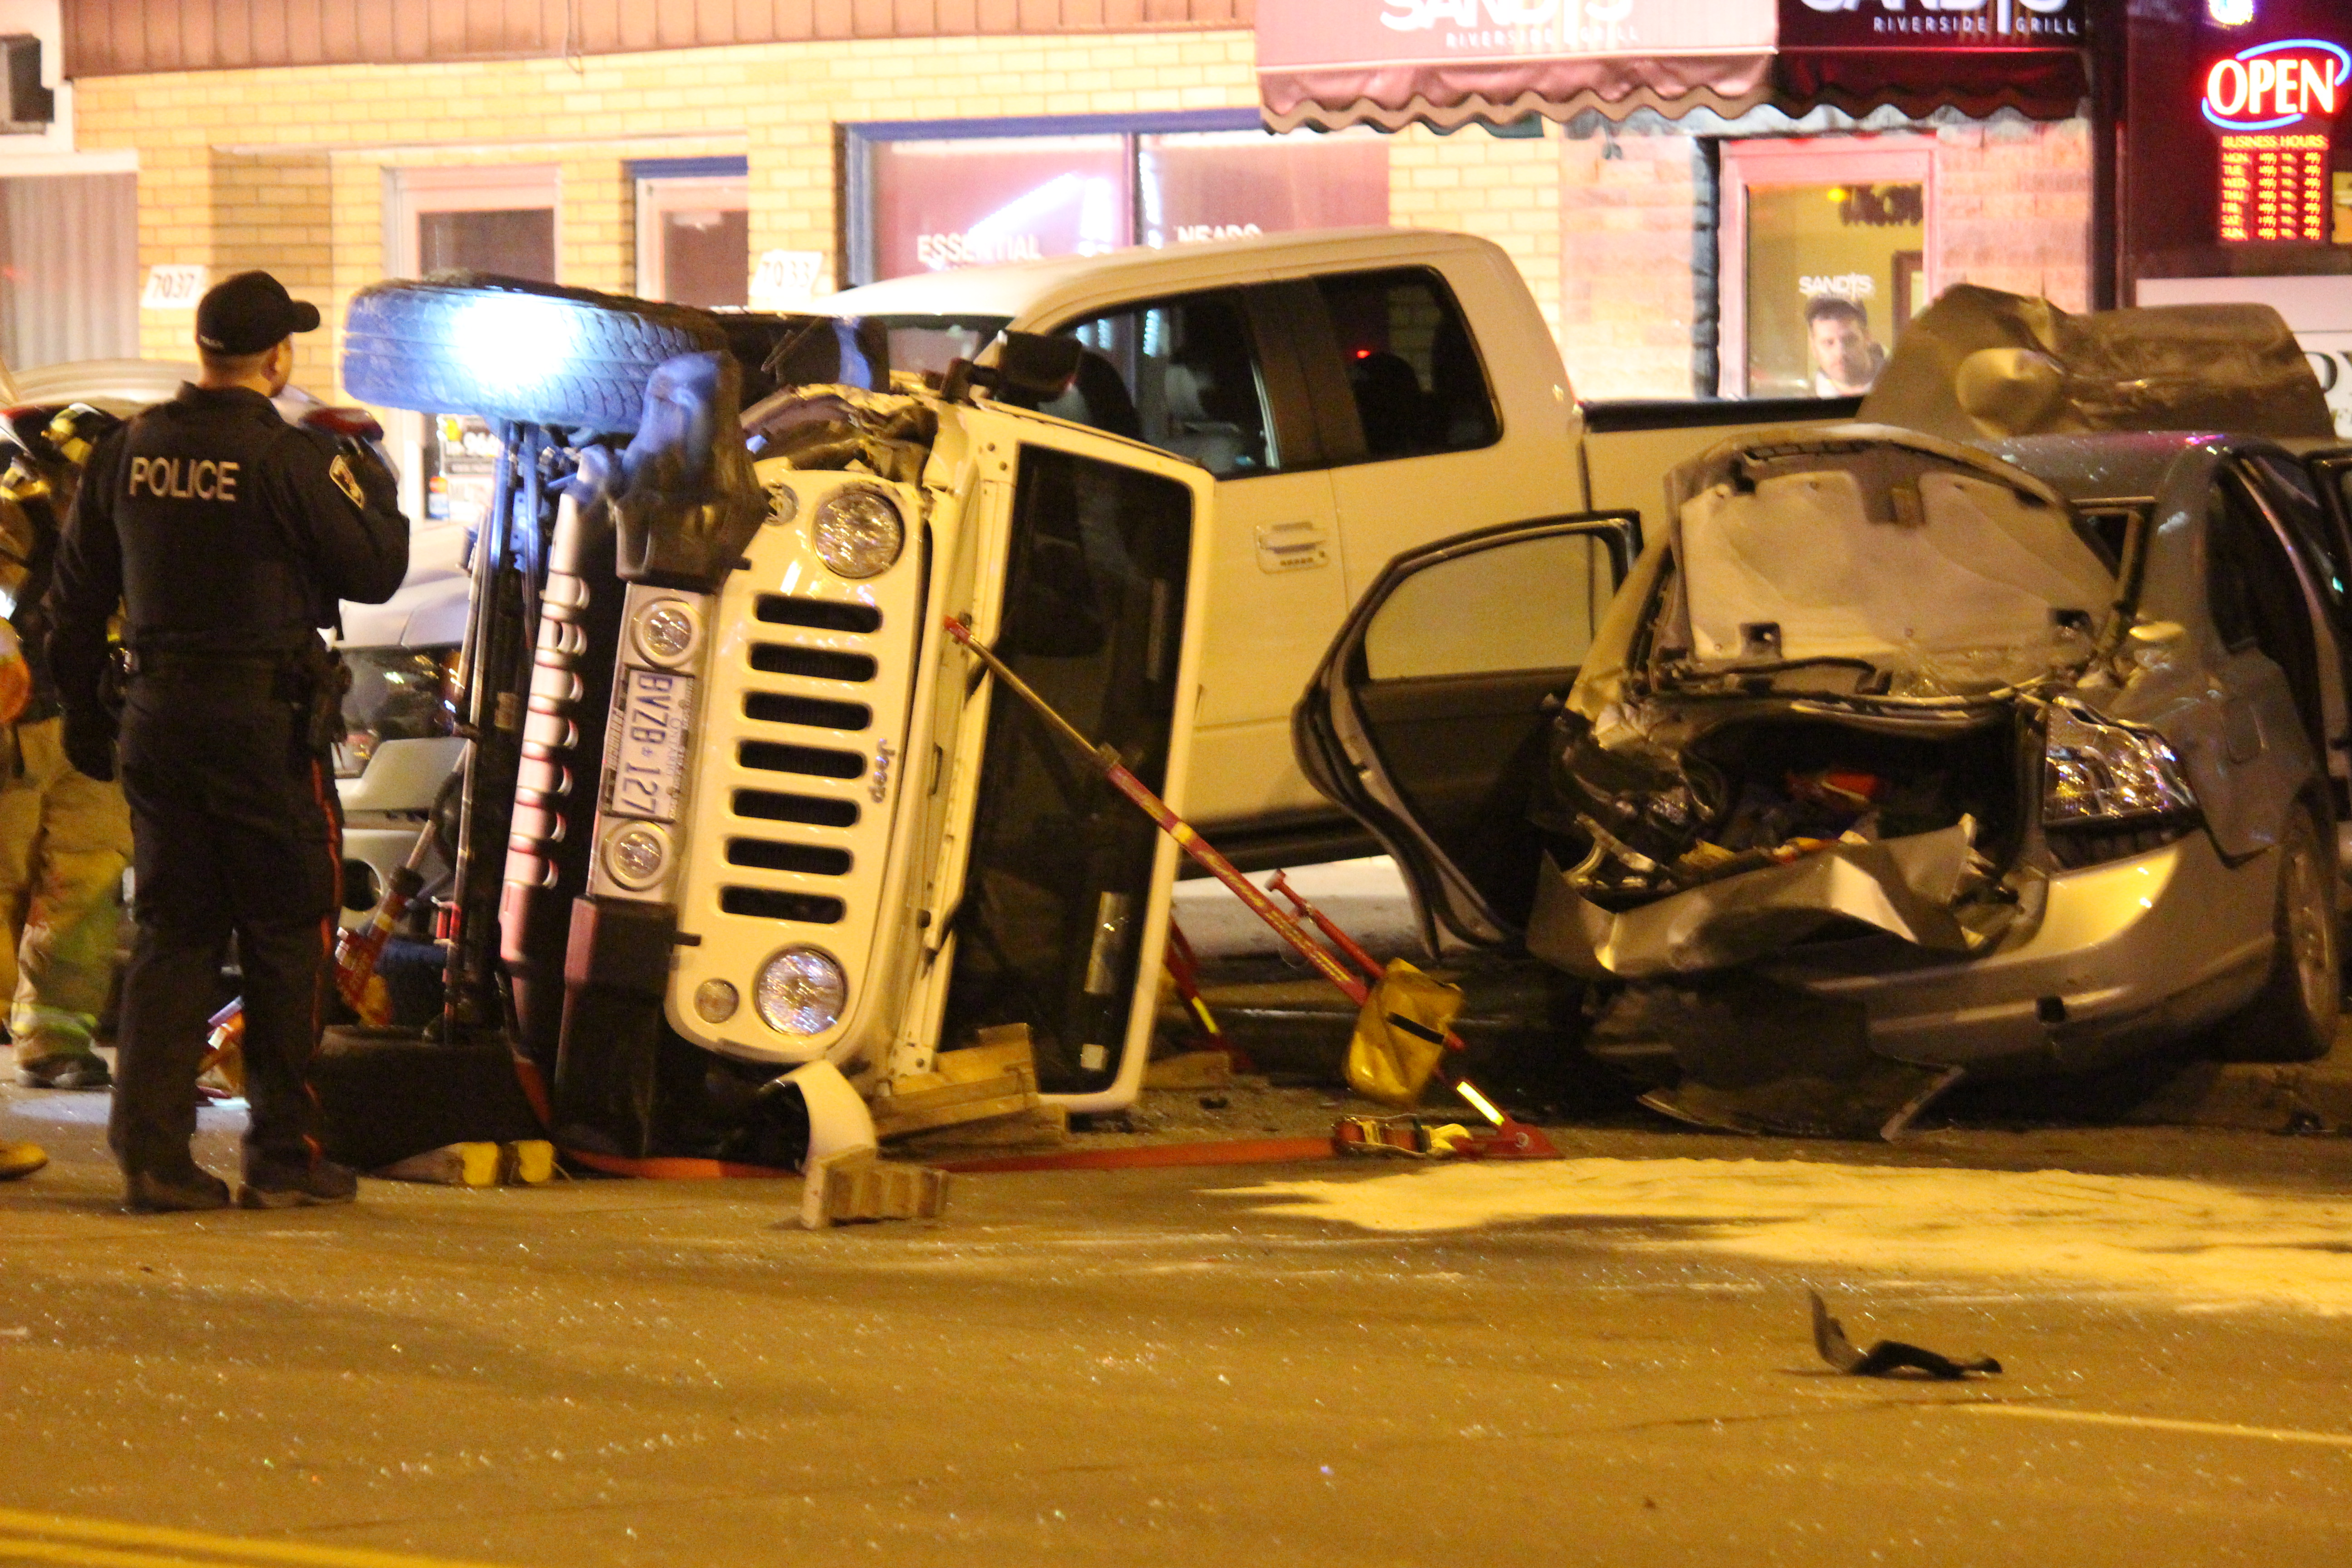 Emergency crews respond to a multi-vehicle crash on Wyandotte St. E at St. Rose Ave., March 31, 2015. (Photo by Jason Viau)